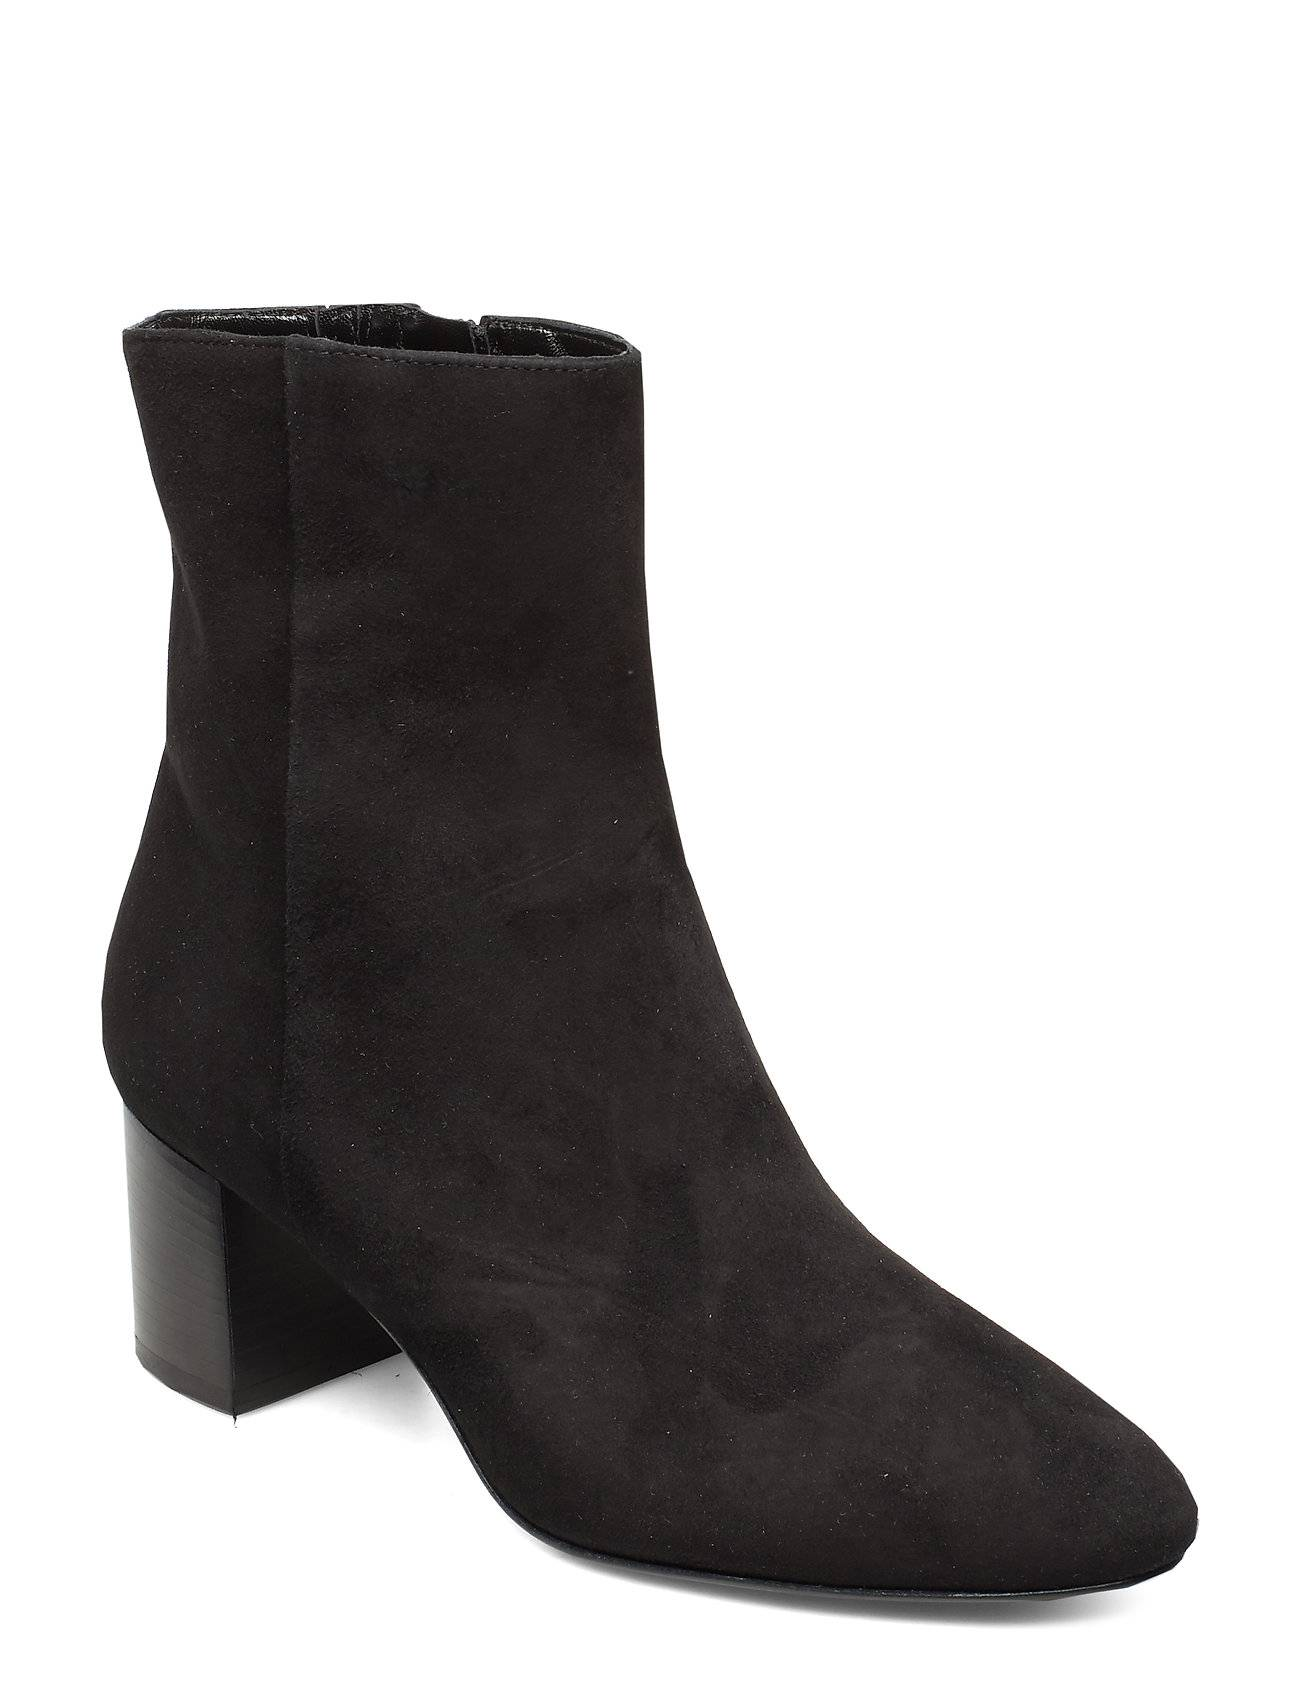 Apair Plan Low Rounded Bootie Shoes Boots Ankle Boots Ankle Boots With Heel Musta Apair